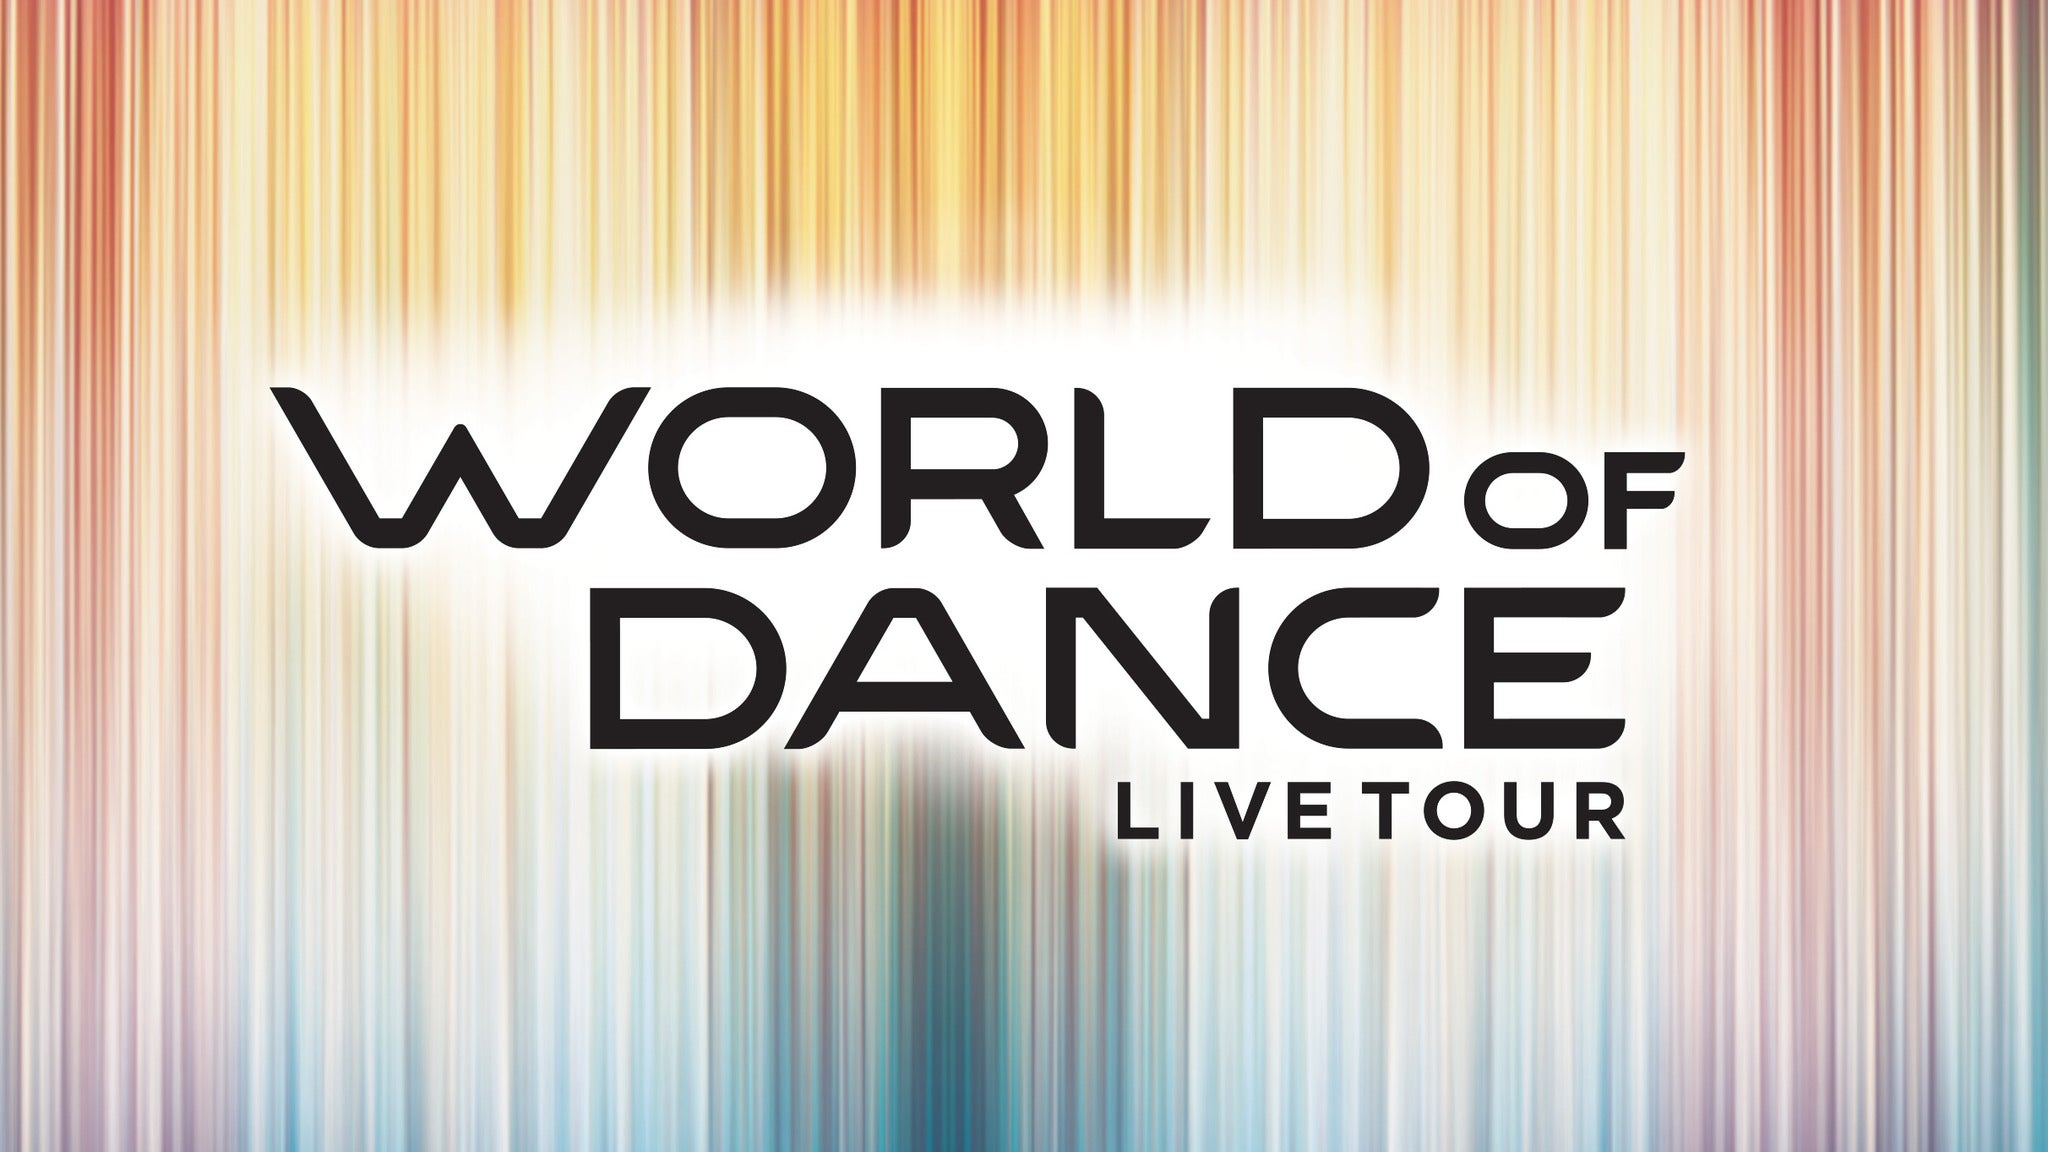 World of Dance Live Tour